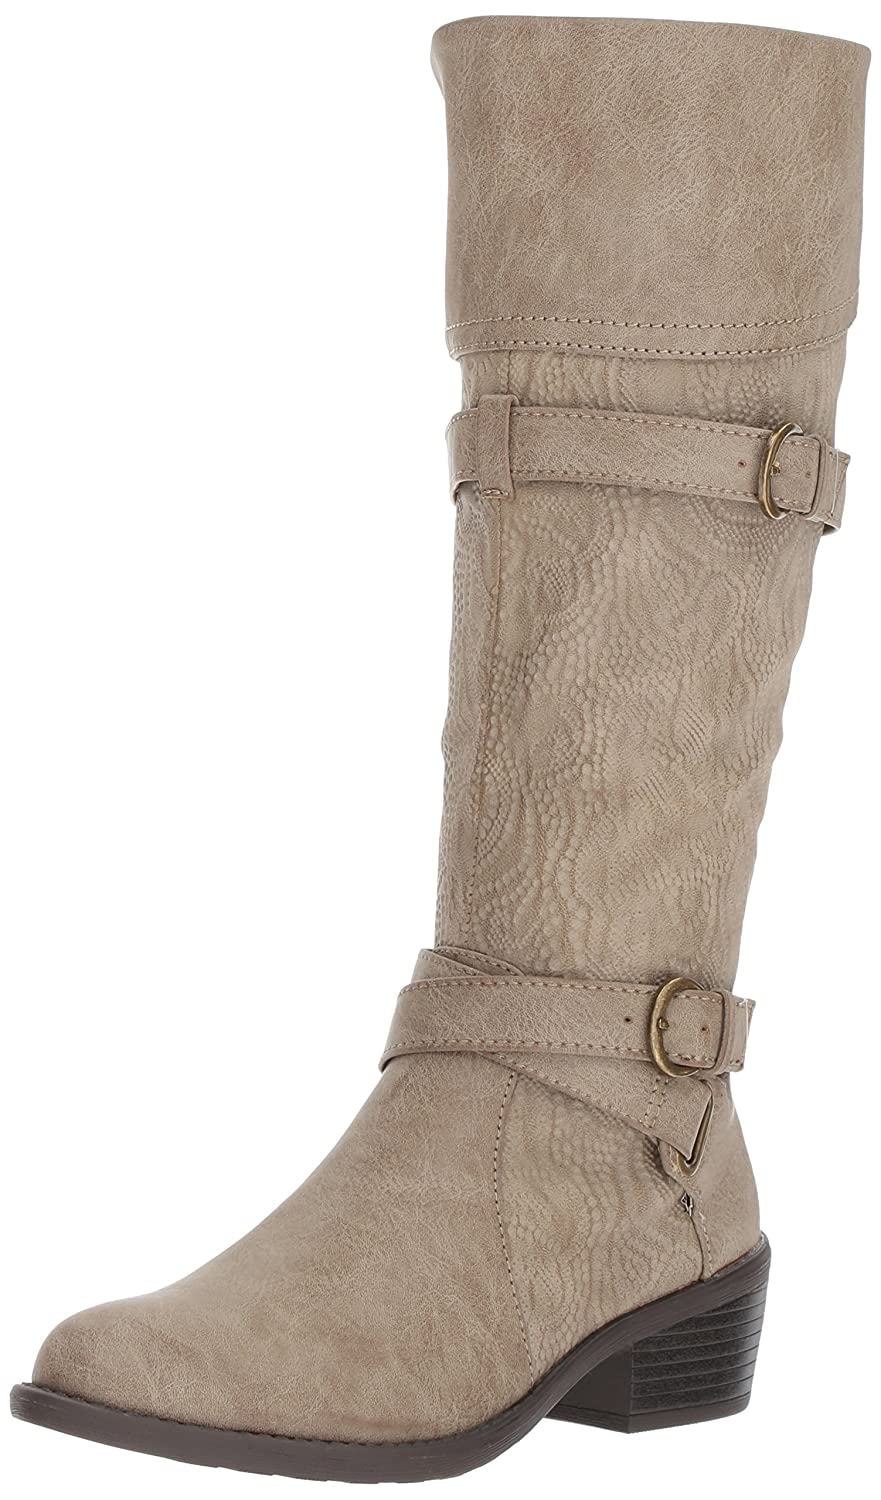 Easy Street Women's Kelsa Harness Boot B071PF8DXN 9.5 M US|Taupe/Embossed